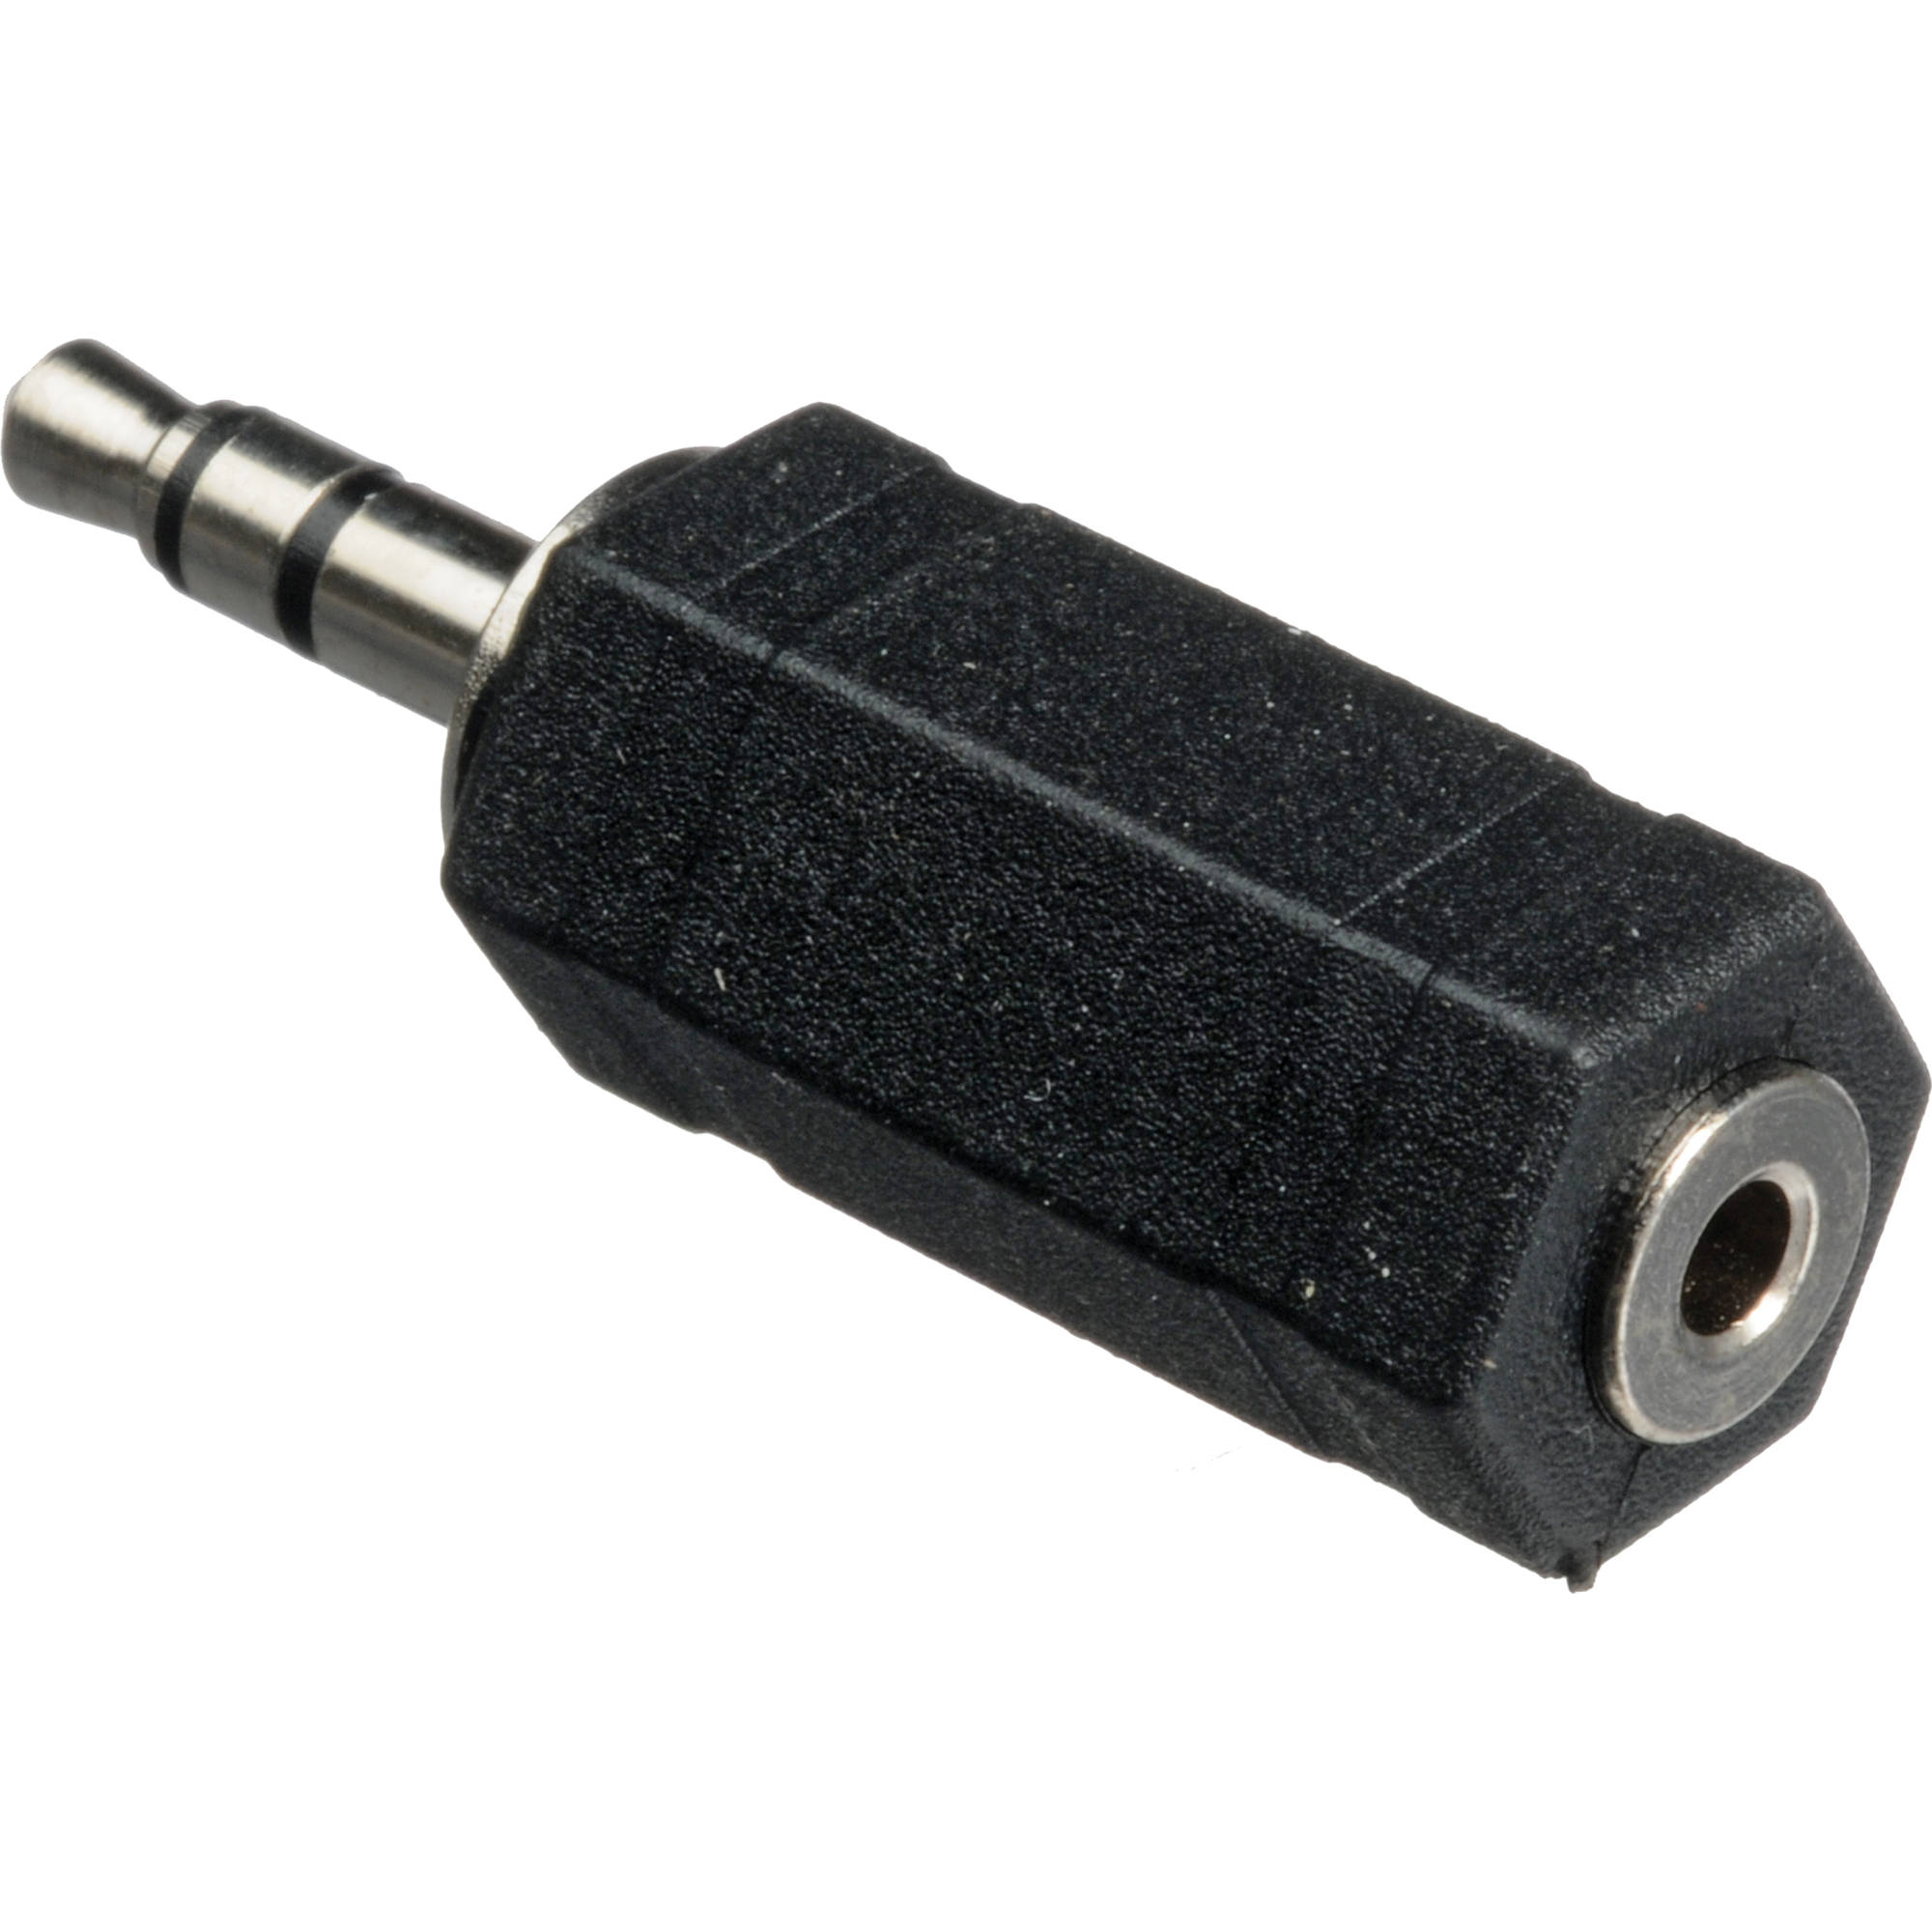 A-3525MF2: 3.5mm Stereo male to 2.5mm Stereo female adapter